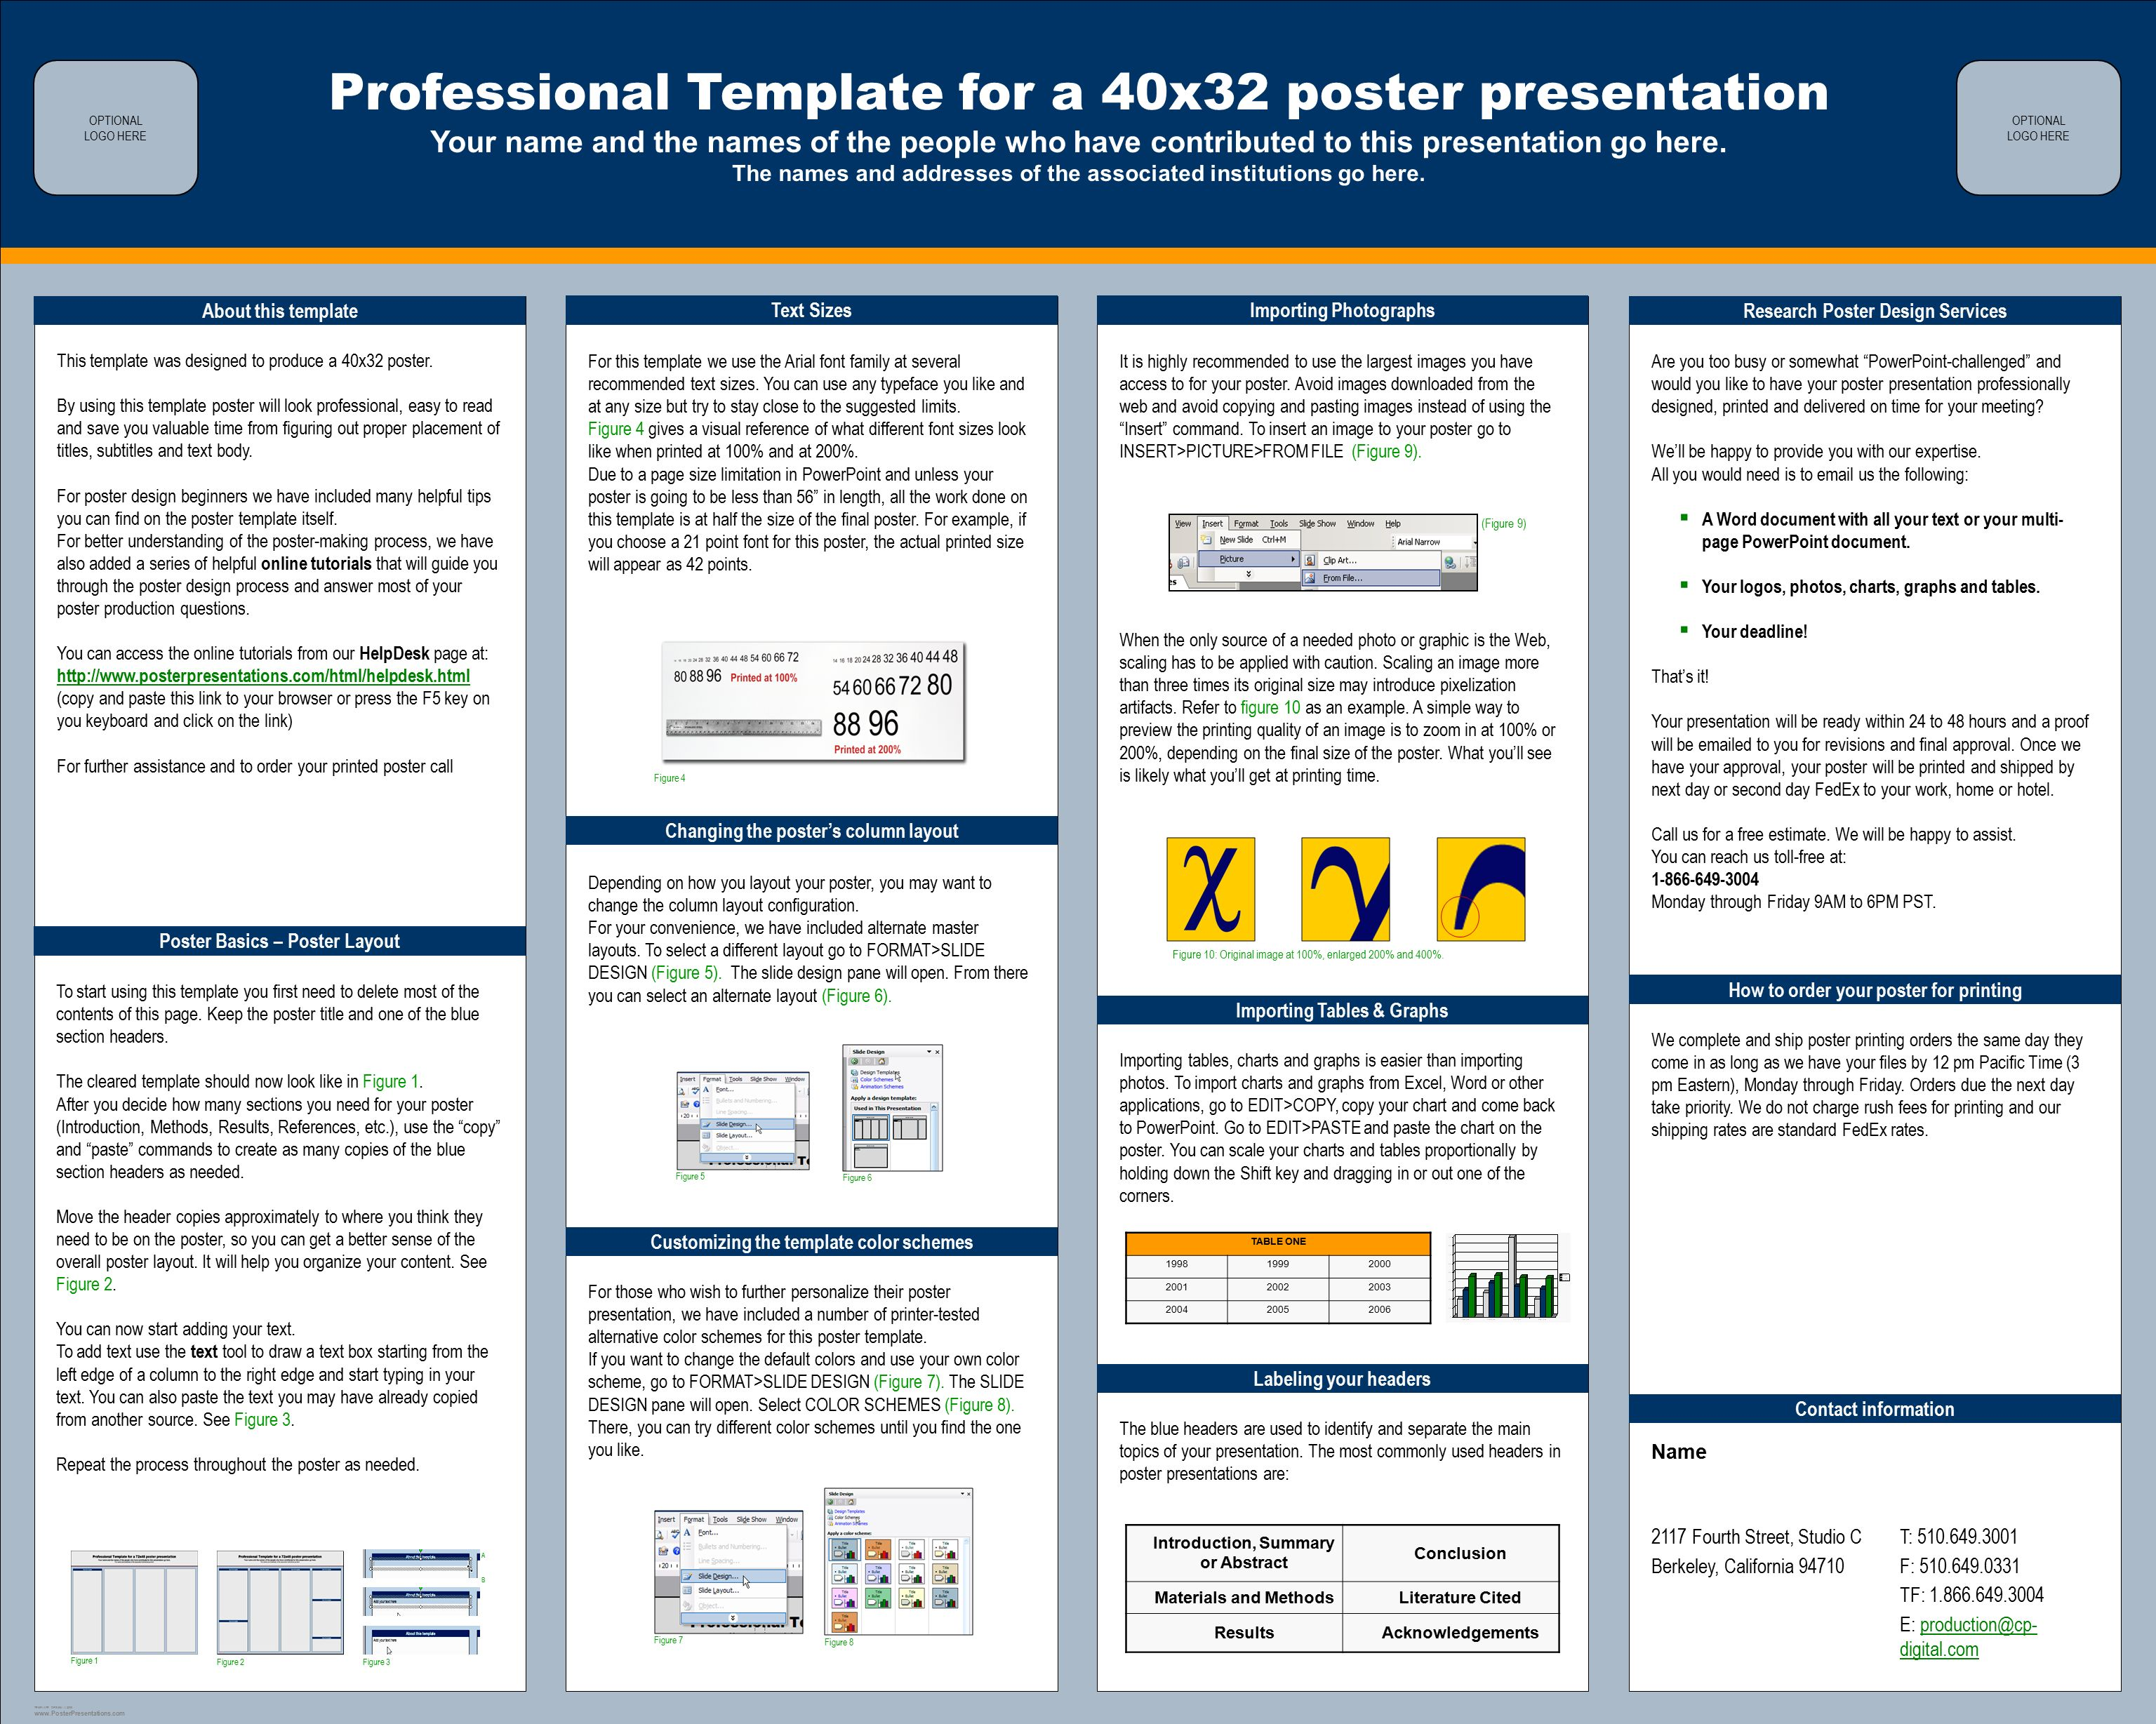 Professional template for a 40x32 poster presentation ppt download professional template for a 40x32 poster presentation toneelgroepblik Image collections